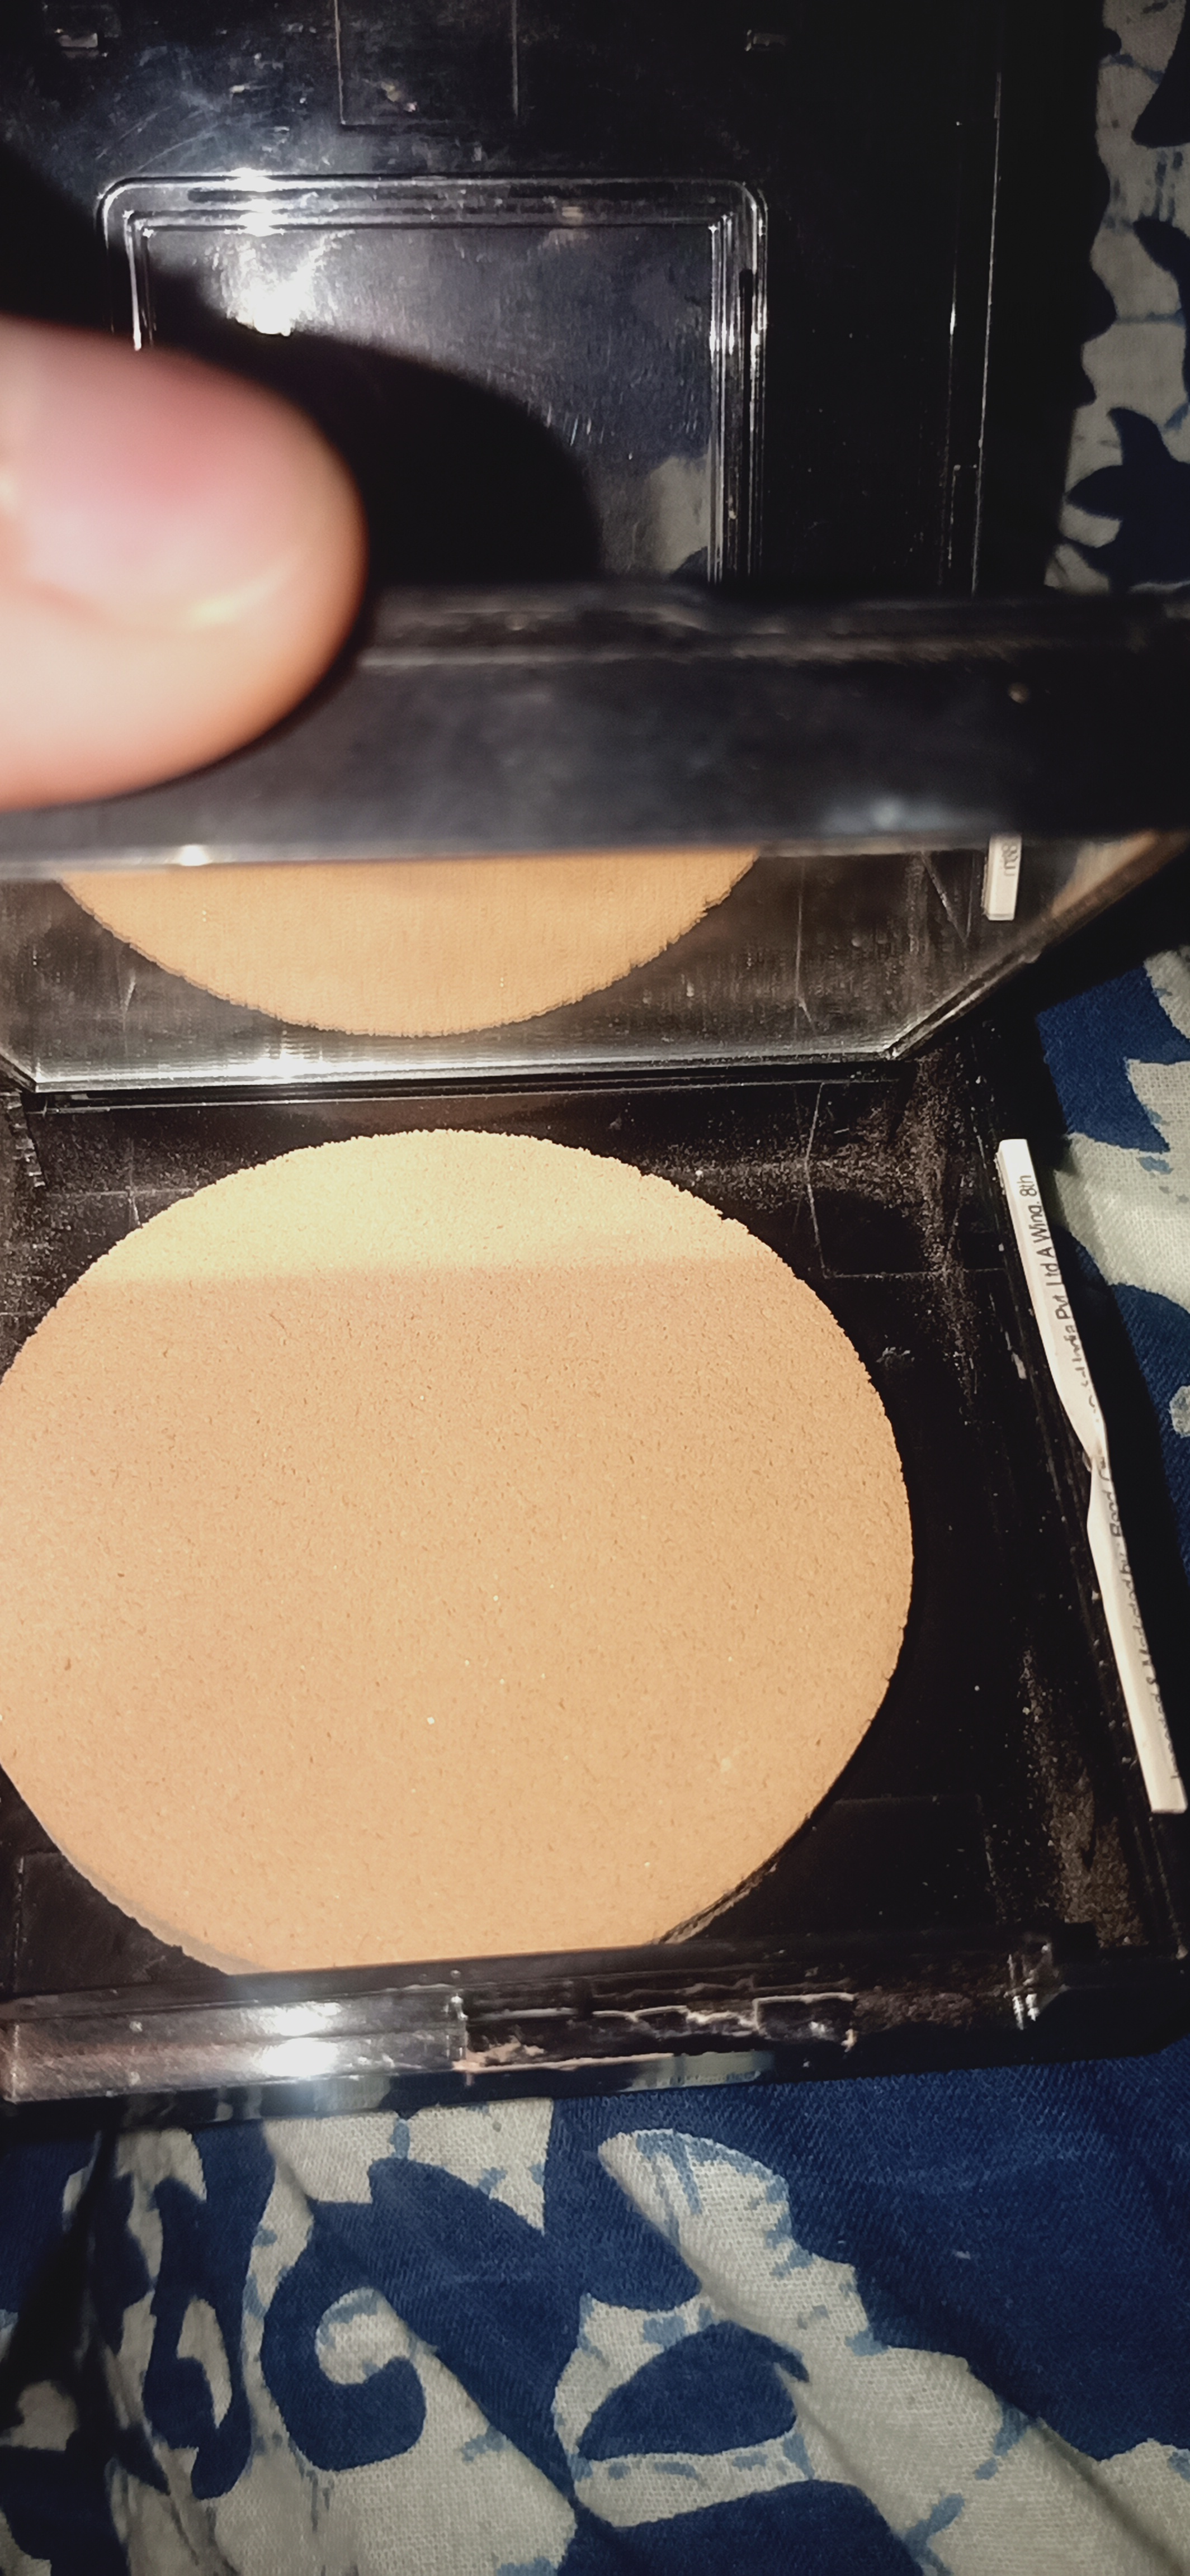 Maybelline Fit Me Matte And Poreless Powder-My favourite product.-By arsh-4